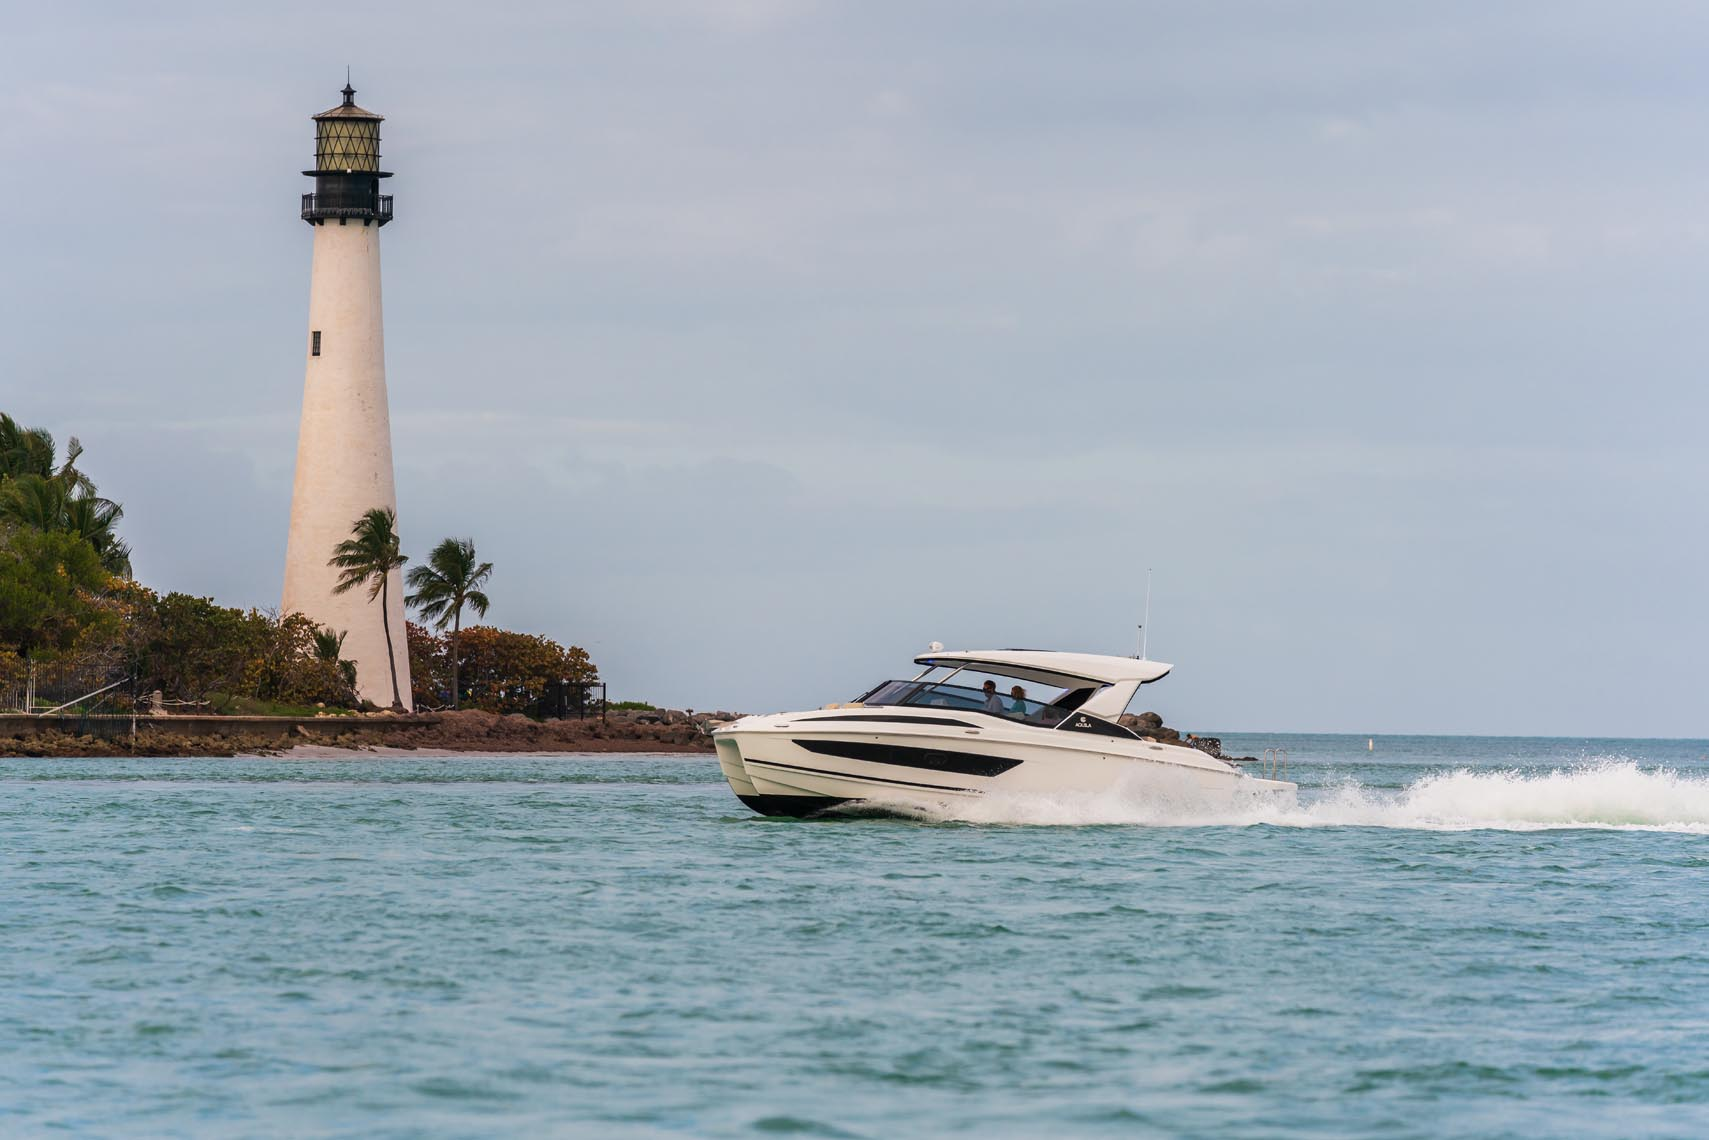 Boat boating  luxury yacht marine lifestyle Florida photographer Steinberger Boat boating  luxury yacht marine lifestyle photographer Steinberger shoots in Florida, Minnesota, Wisconsin, Tennessee, worldwide